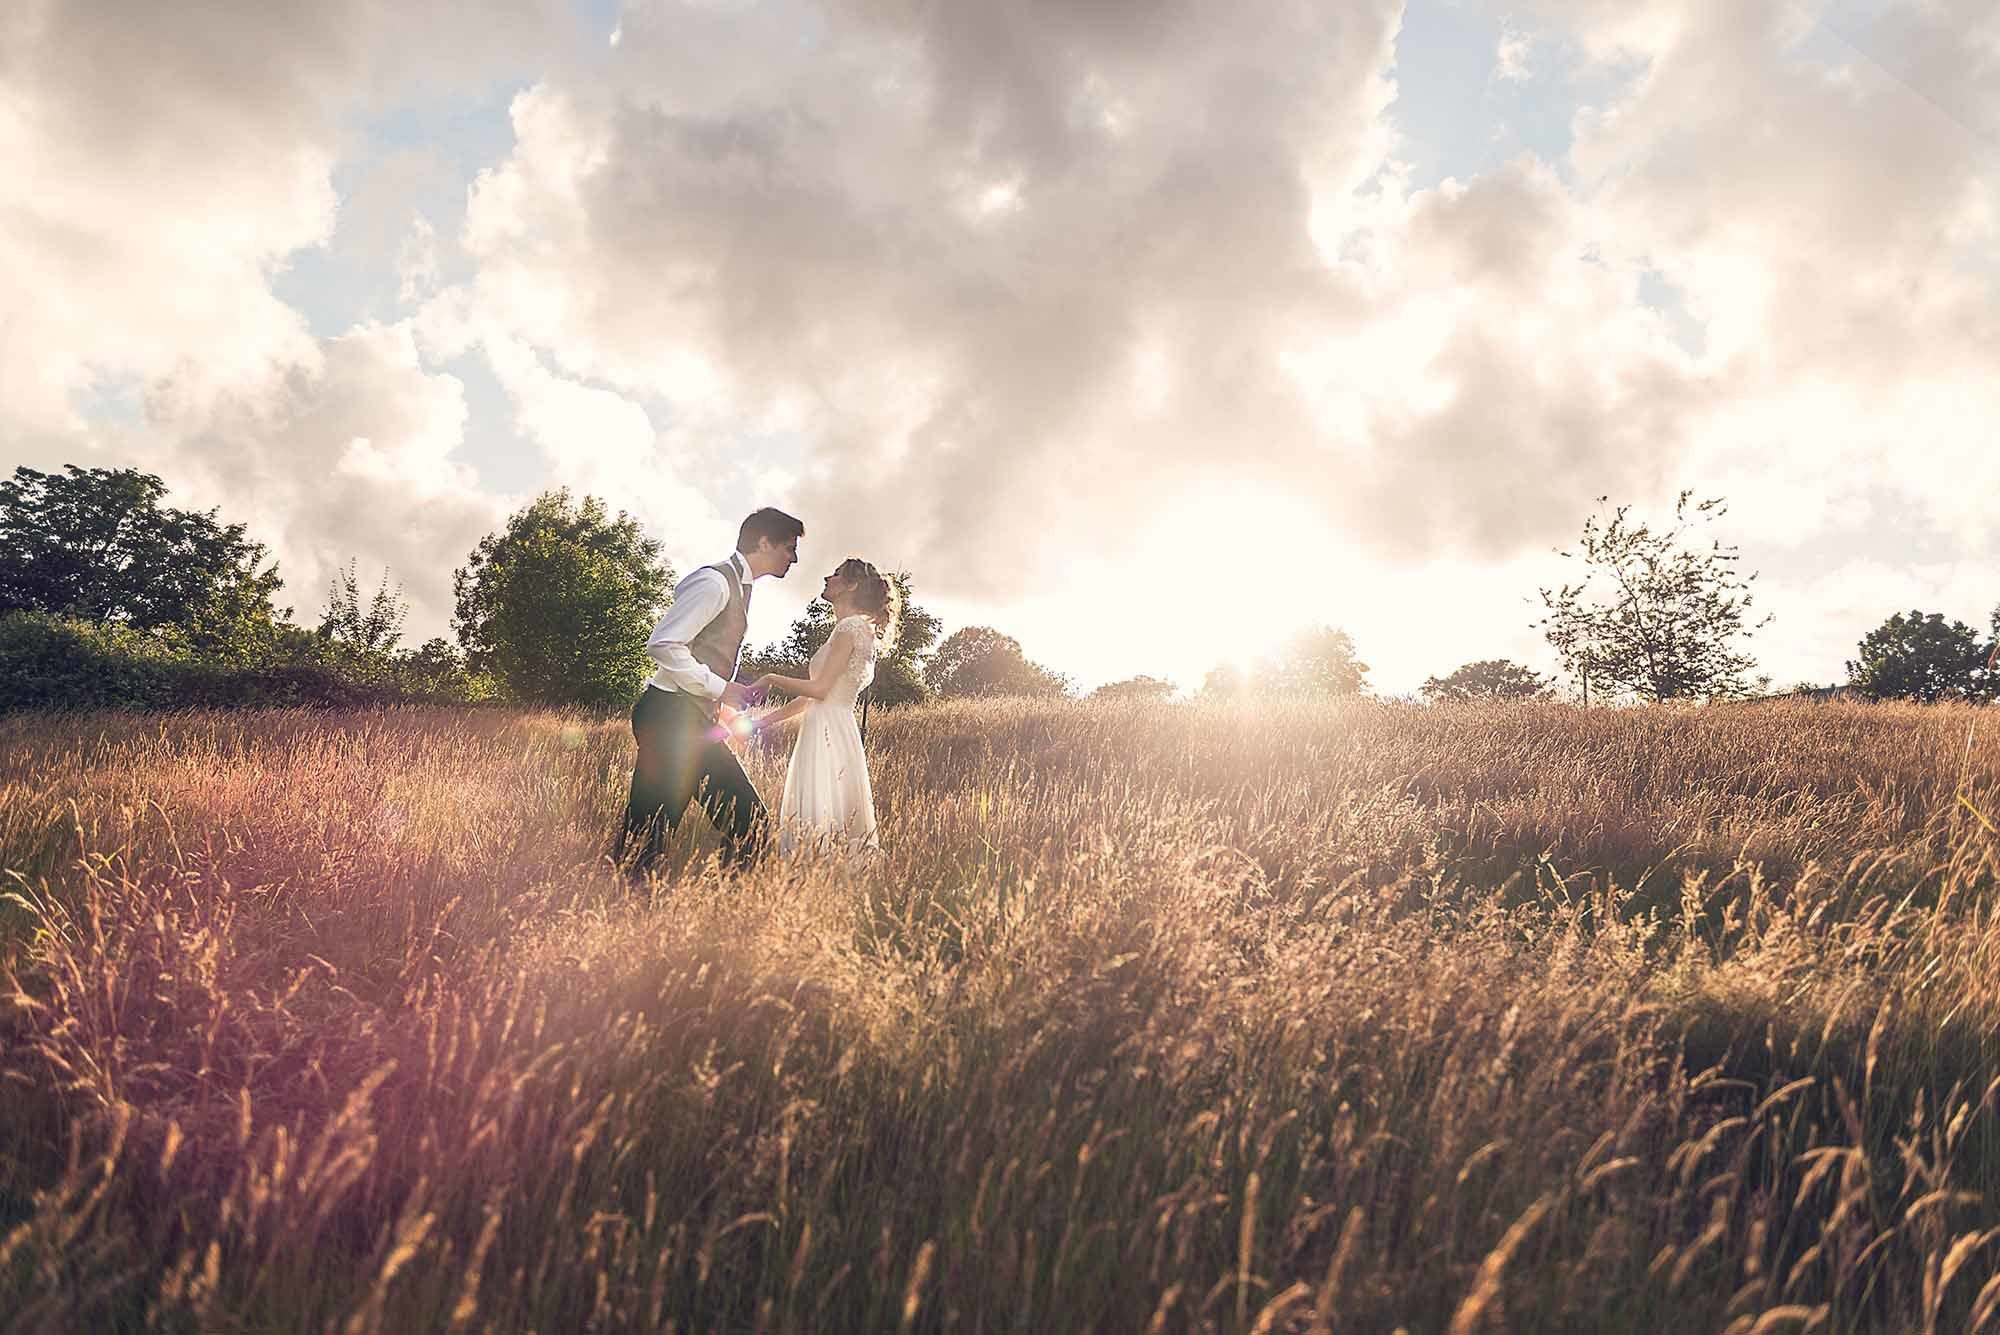 This is a summer wedding. The image is of the bride and groom in a field of long grass. The grass is parched fromthe summer sun. The couple are in the mid distance and it is a full length shot. They are slightly located off centre to the left of the photograph. Half of the images is of the grass and the top the top half is of the sky which is cloudy. There is a line of trees in the middle of the photo running accross the horizon. The bride and groom are facing each other and holding hands. The groom is leaning towards the bride. The groom wears dark trousers and a brown waistcoat. He wears a white shirt and a dark tie he has dark hair. The bride is wearing a white, full length dress. She has dark blond hair which she wears up loosely and is looking towards the groom.